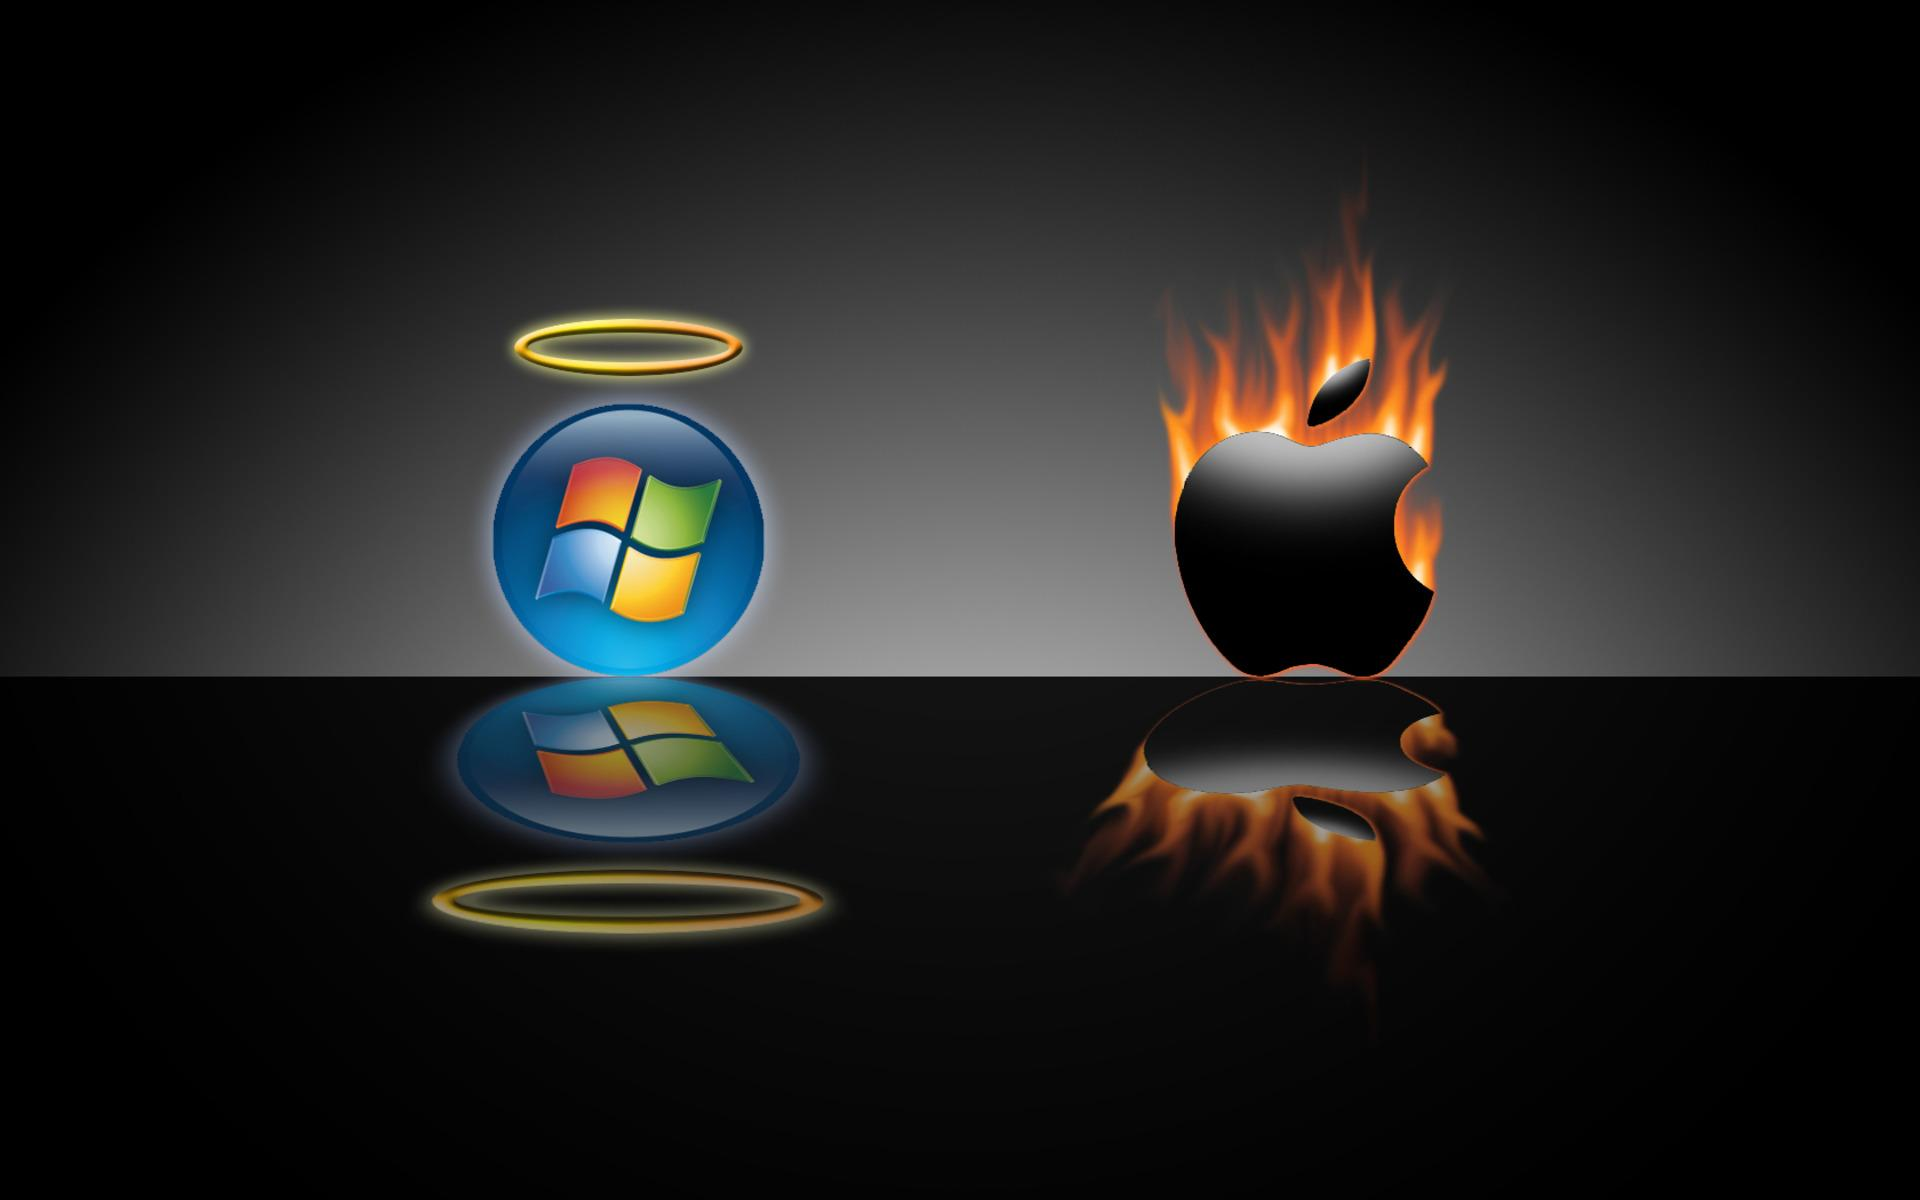 1200 Wallpapers Widescreen Wallpapers 7479 funny apple microsoftjpg 1920x1200